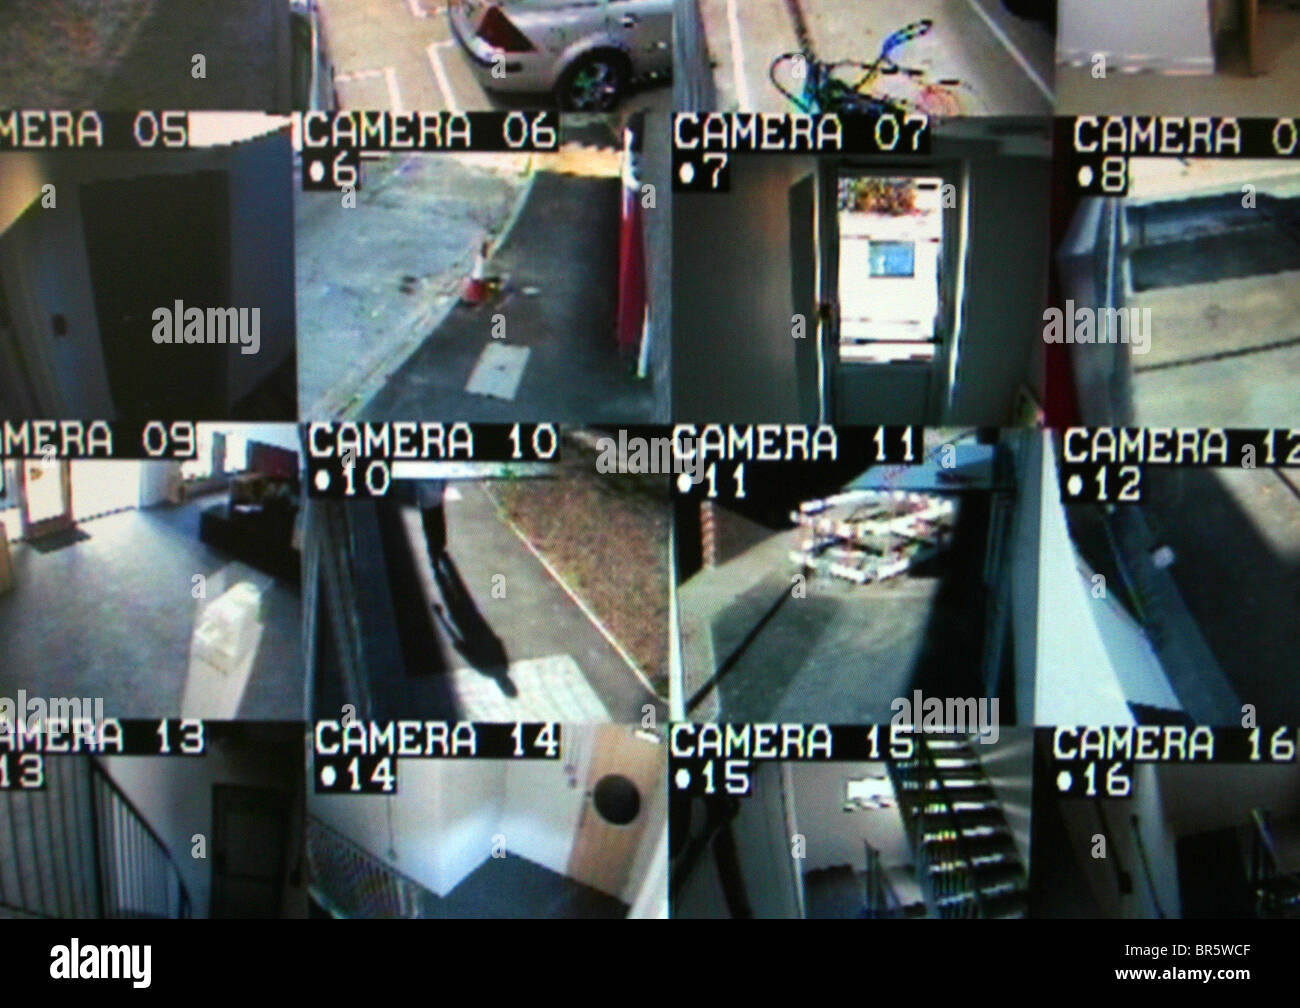 16 screens of a building CCTV security camera system. - Stock Image